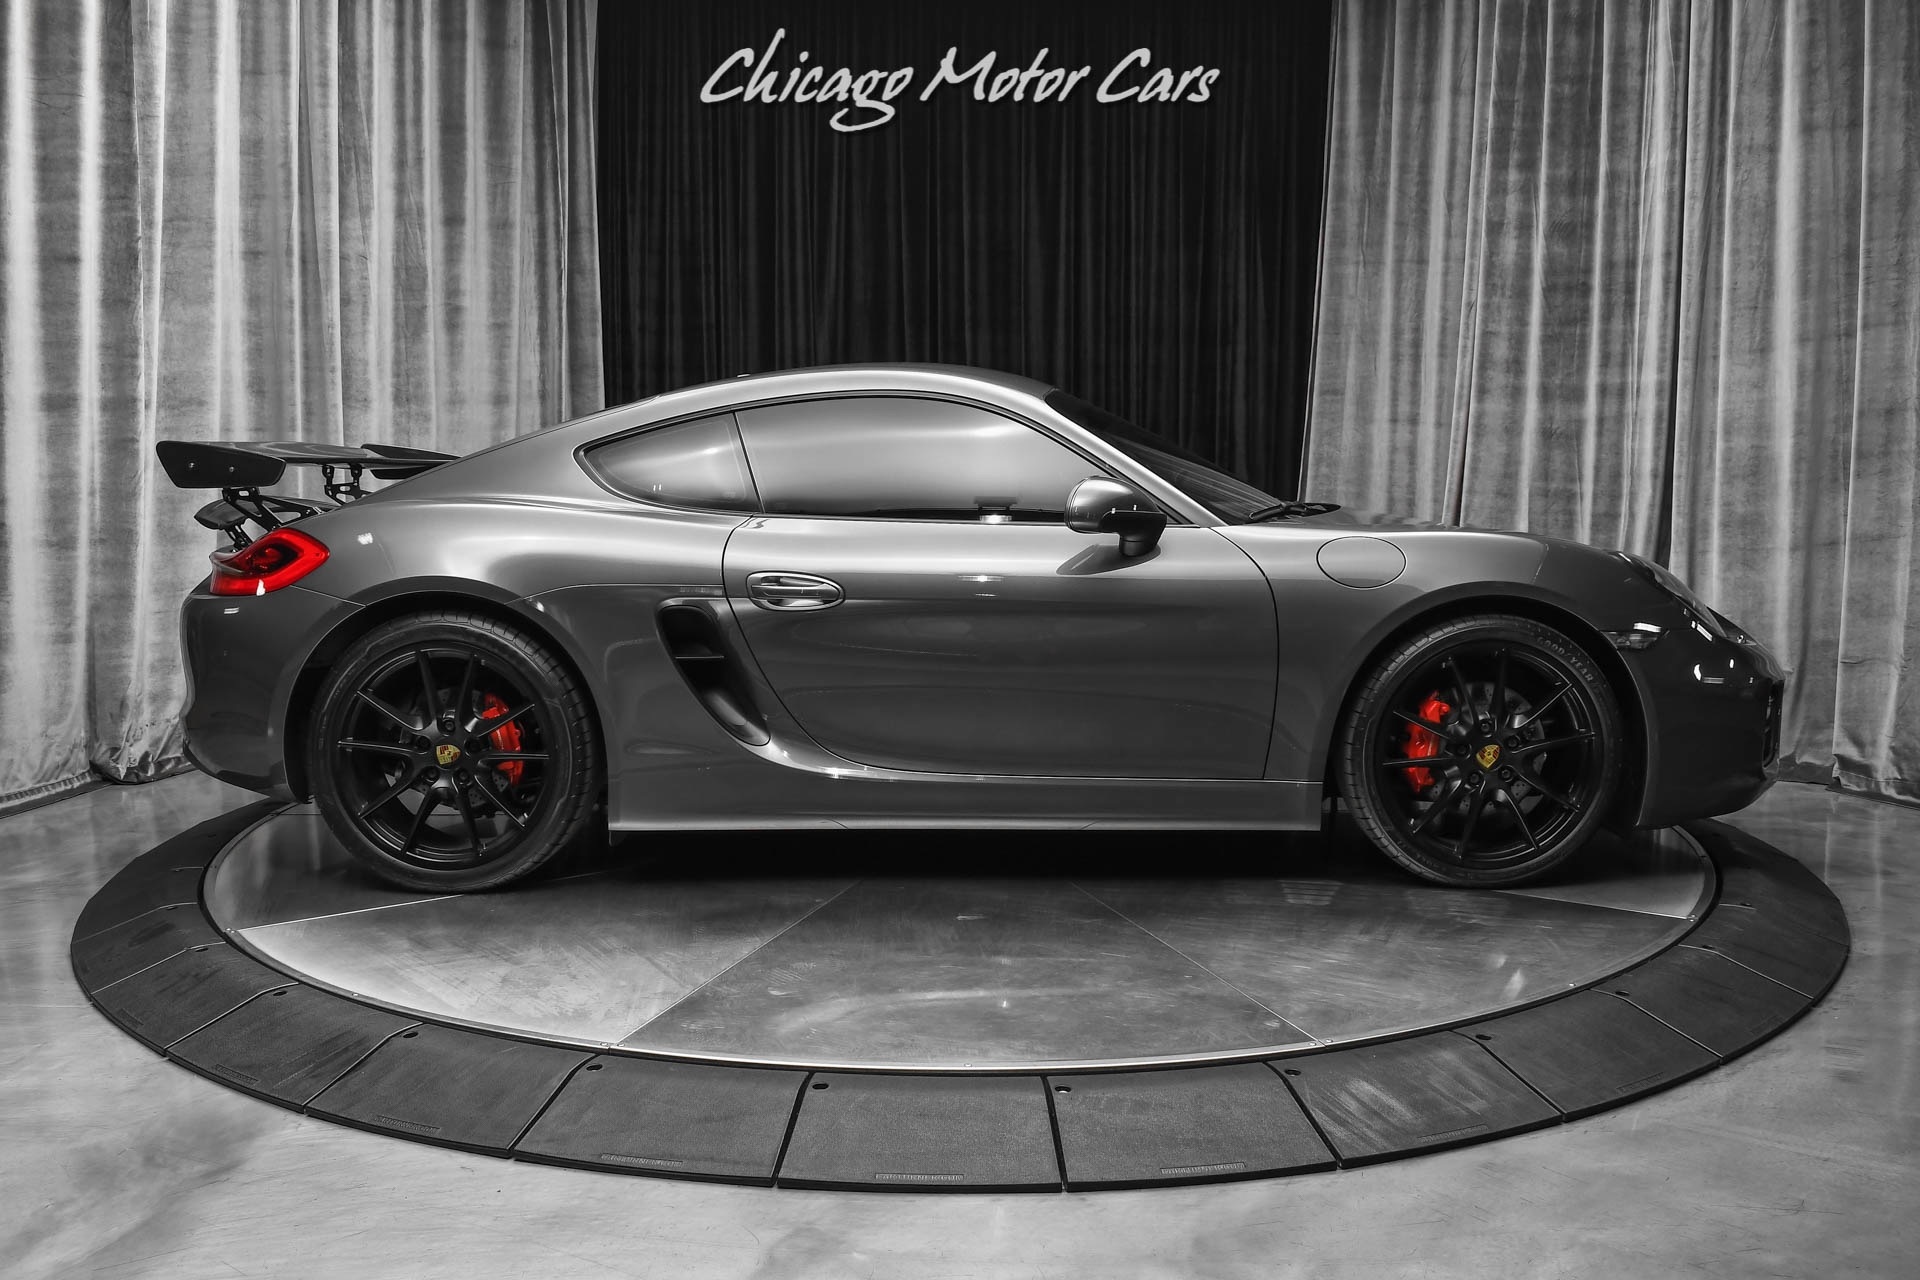 Used-2016-Porsche-Cayman-S-Infotainment-Package-14-Way-Heated-Sport-Seats-Carbon-Fiber-Wing